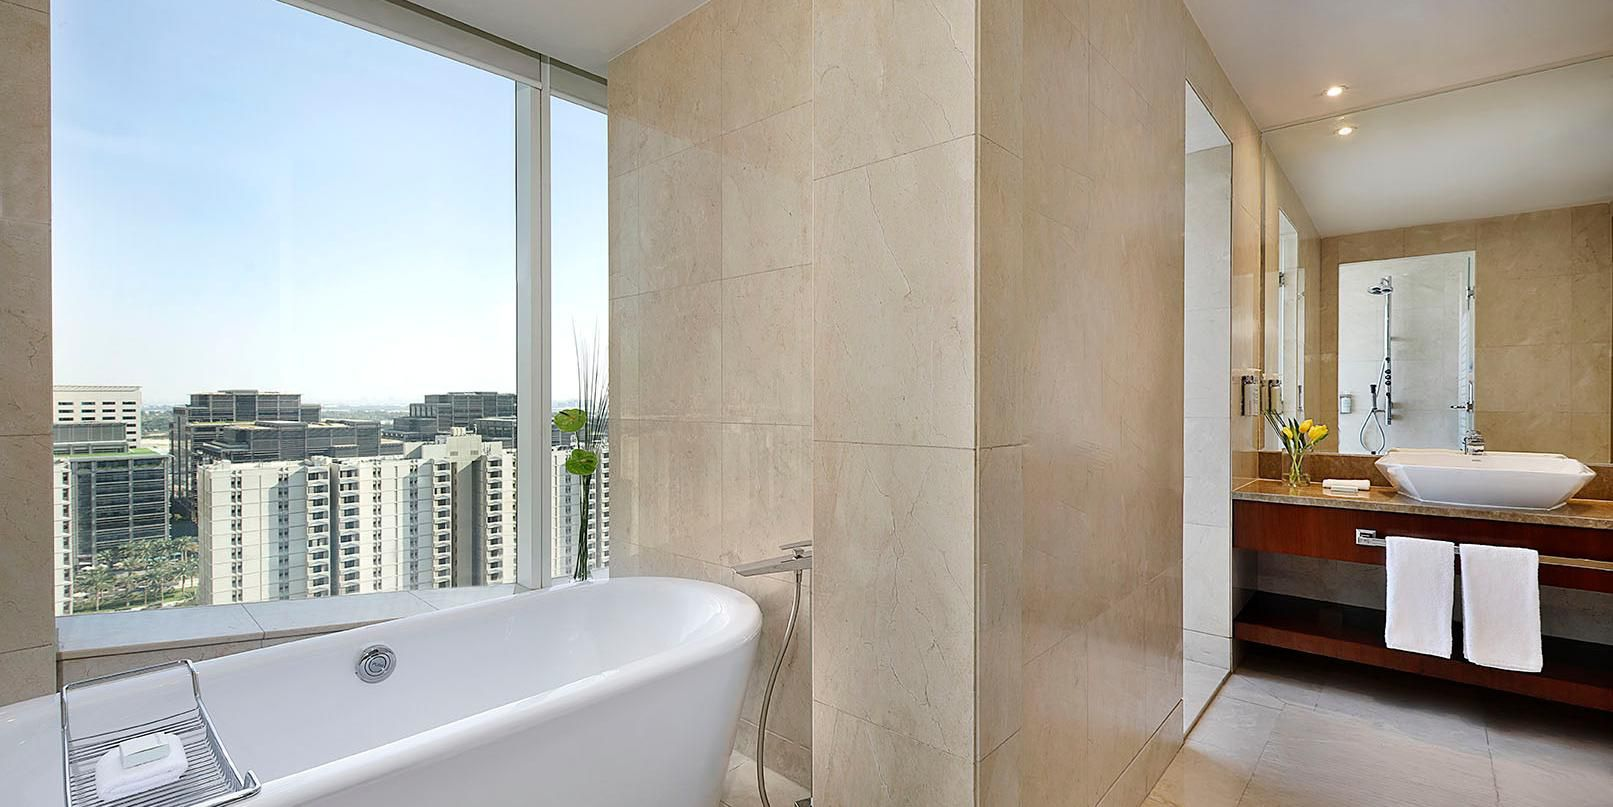 Two Bedroom Suite bathroom, with views of Sheikh Zayed Road